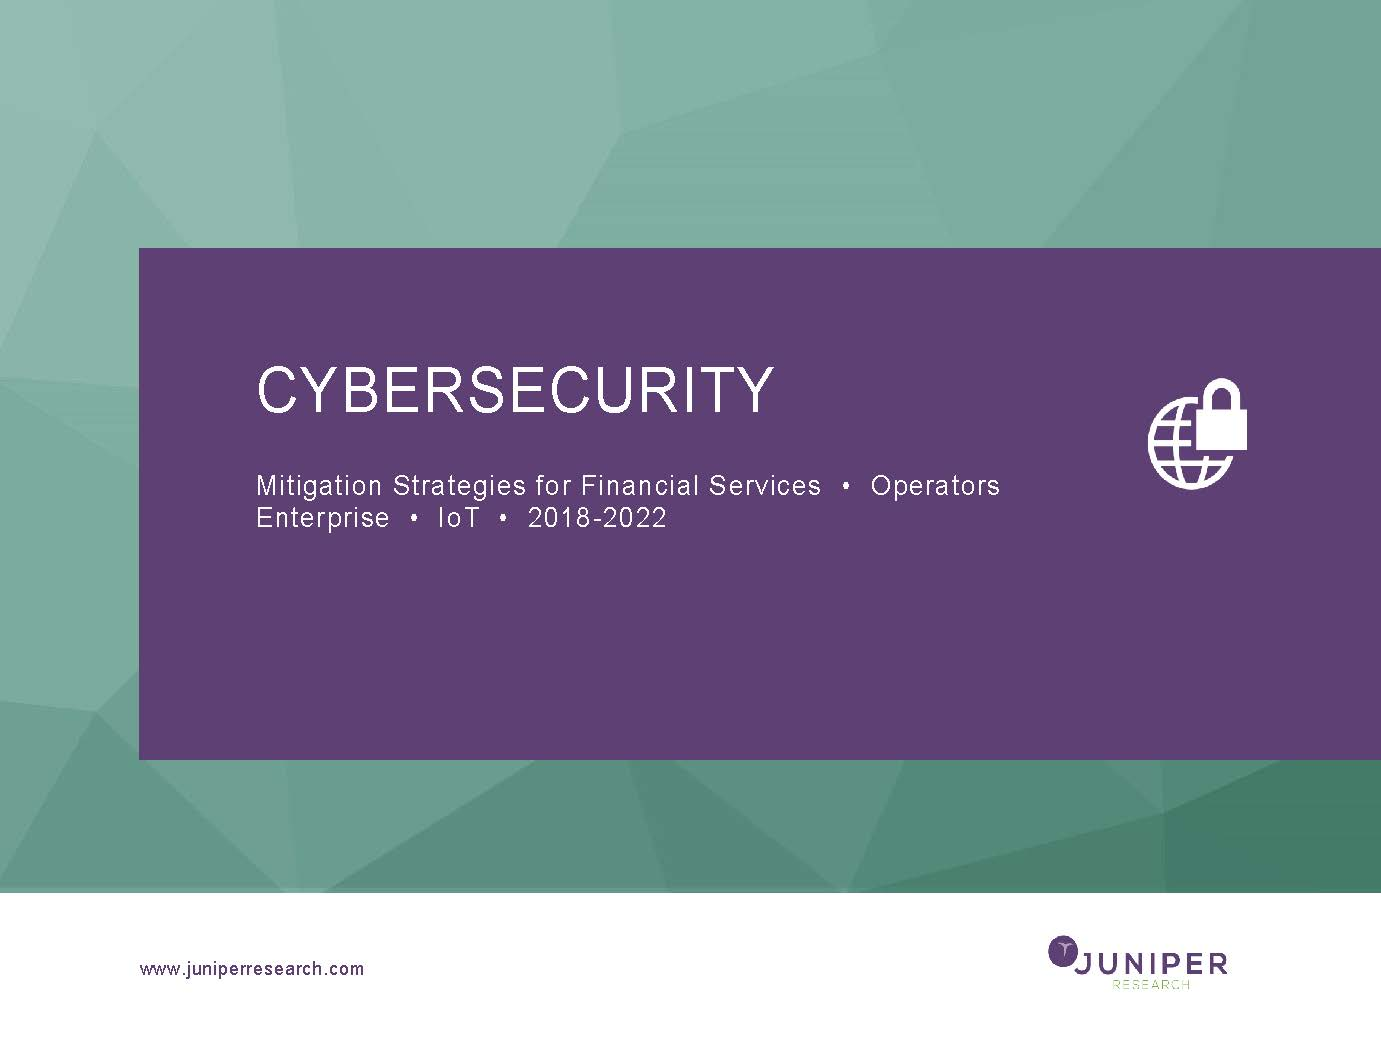 Cybersecurity: Mitigation Strategies for Financial Services, Operators, Enterprise & IOT Full Research Suite